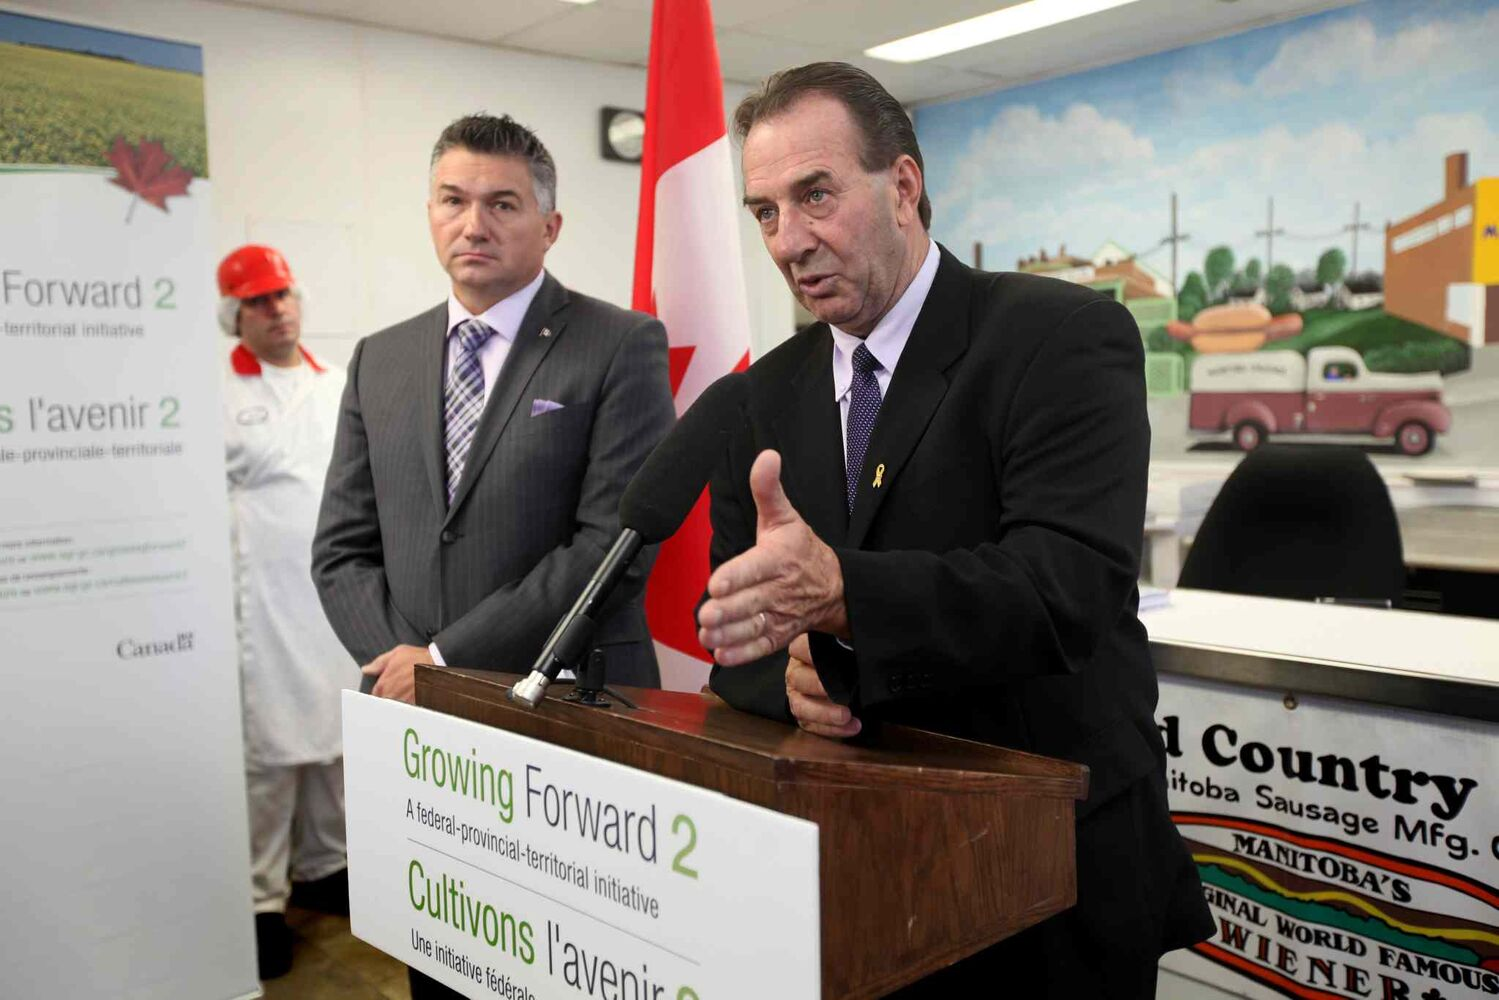 Minister of Agriculture, Food and Rural Initiatives Ron Kostyshyn (right) and Selkirk-Interlake MP James Bezan speak at a press conference Wednesday morning at Winnipeg Old Country Sausage factory on Dufferin Ave. (Ruth Bonneville / Winnipeg Free Press)